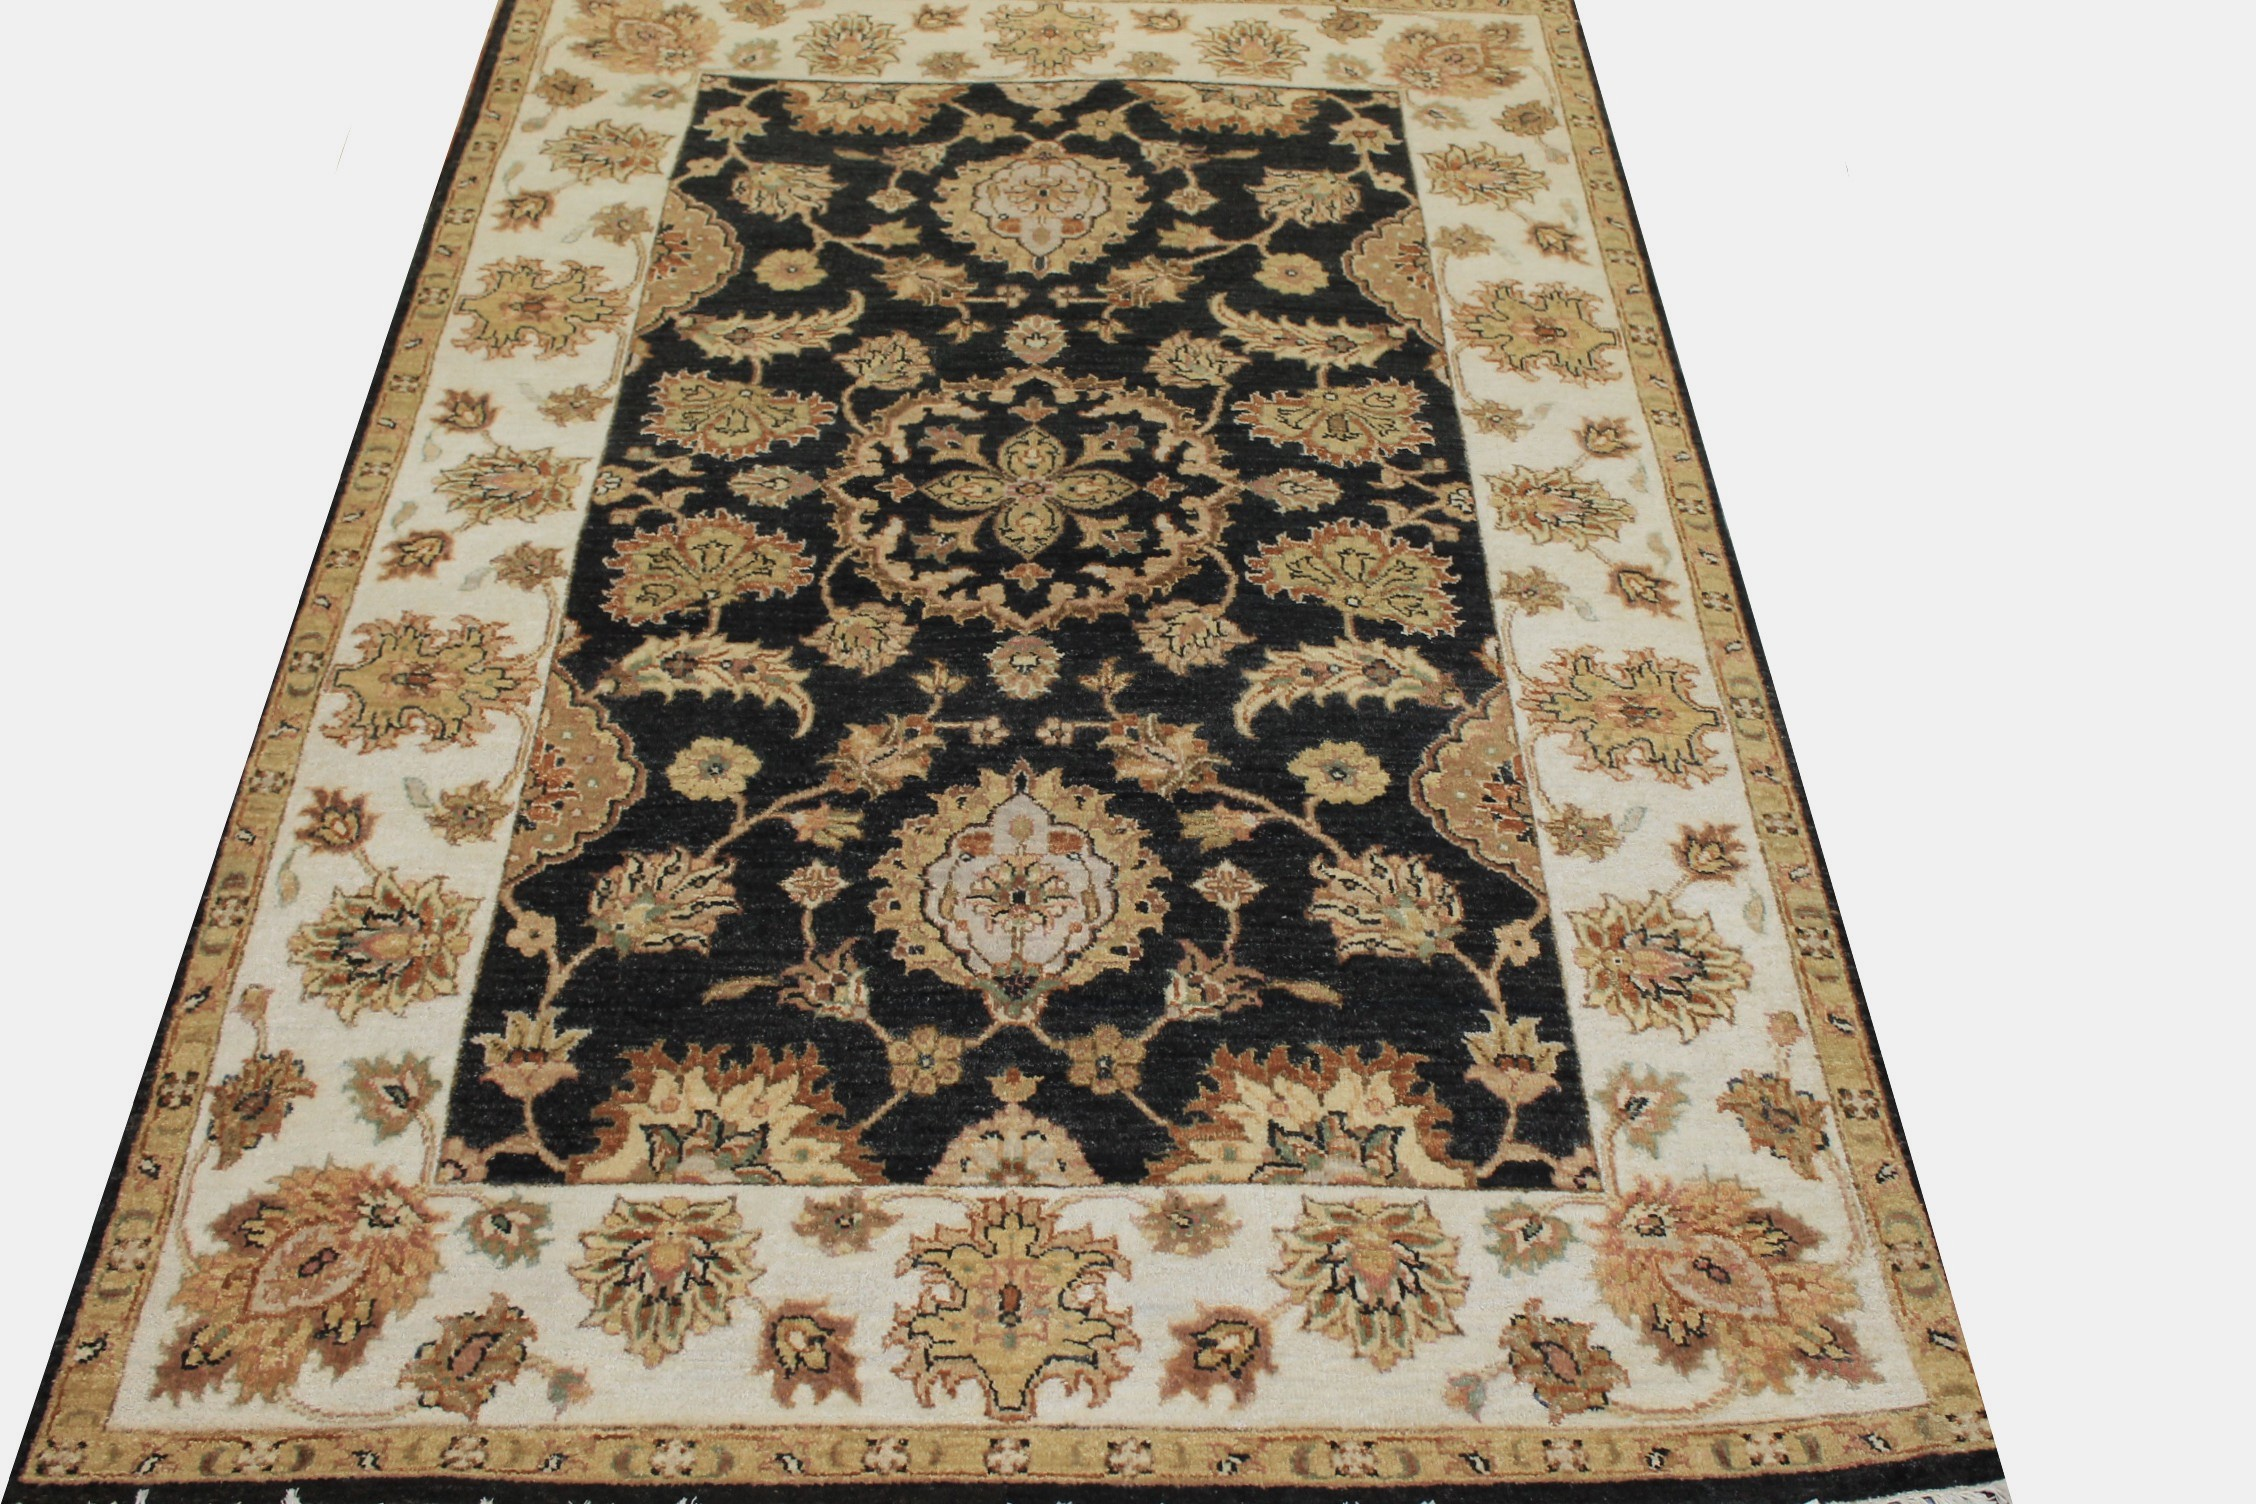 4x6 Traditional Hand Knotted Wool Area Rug - MR024255